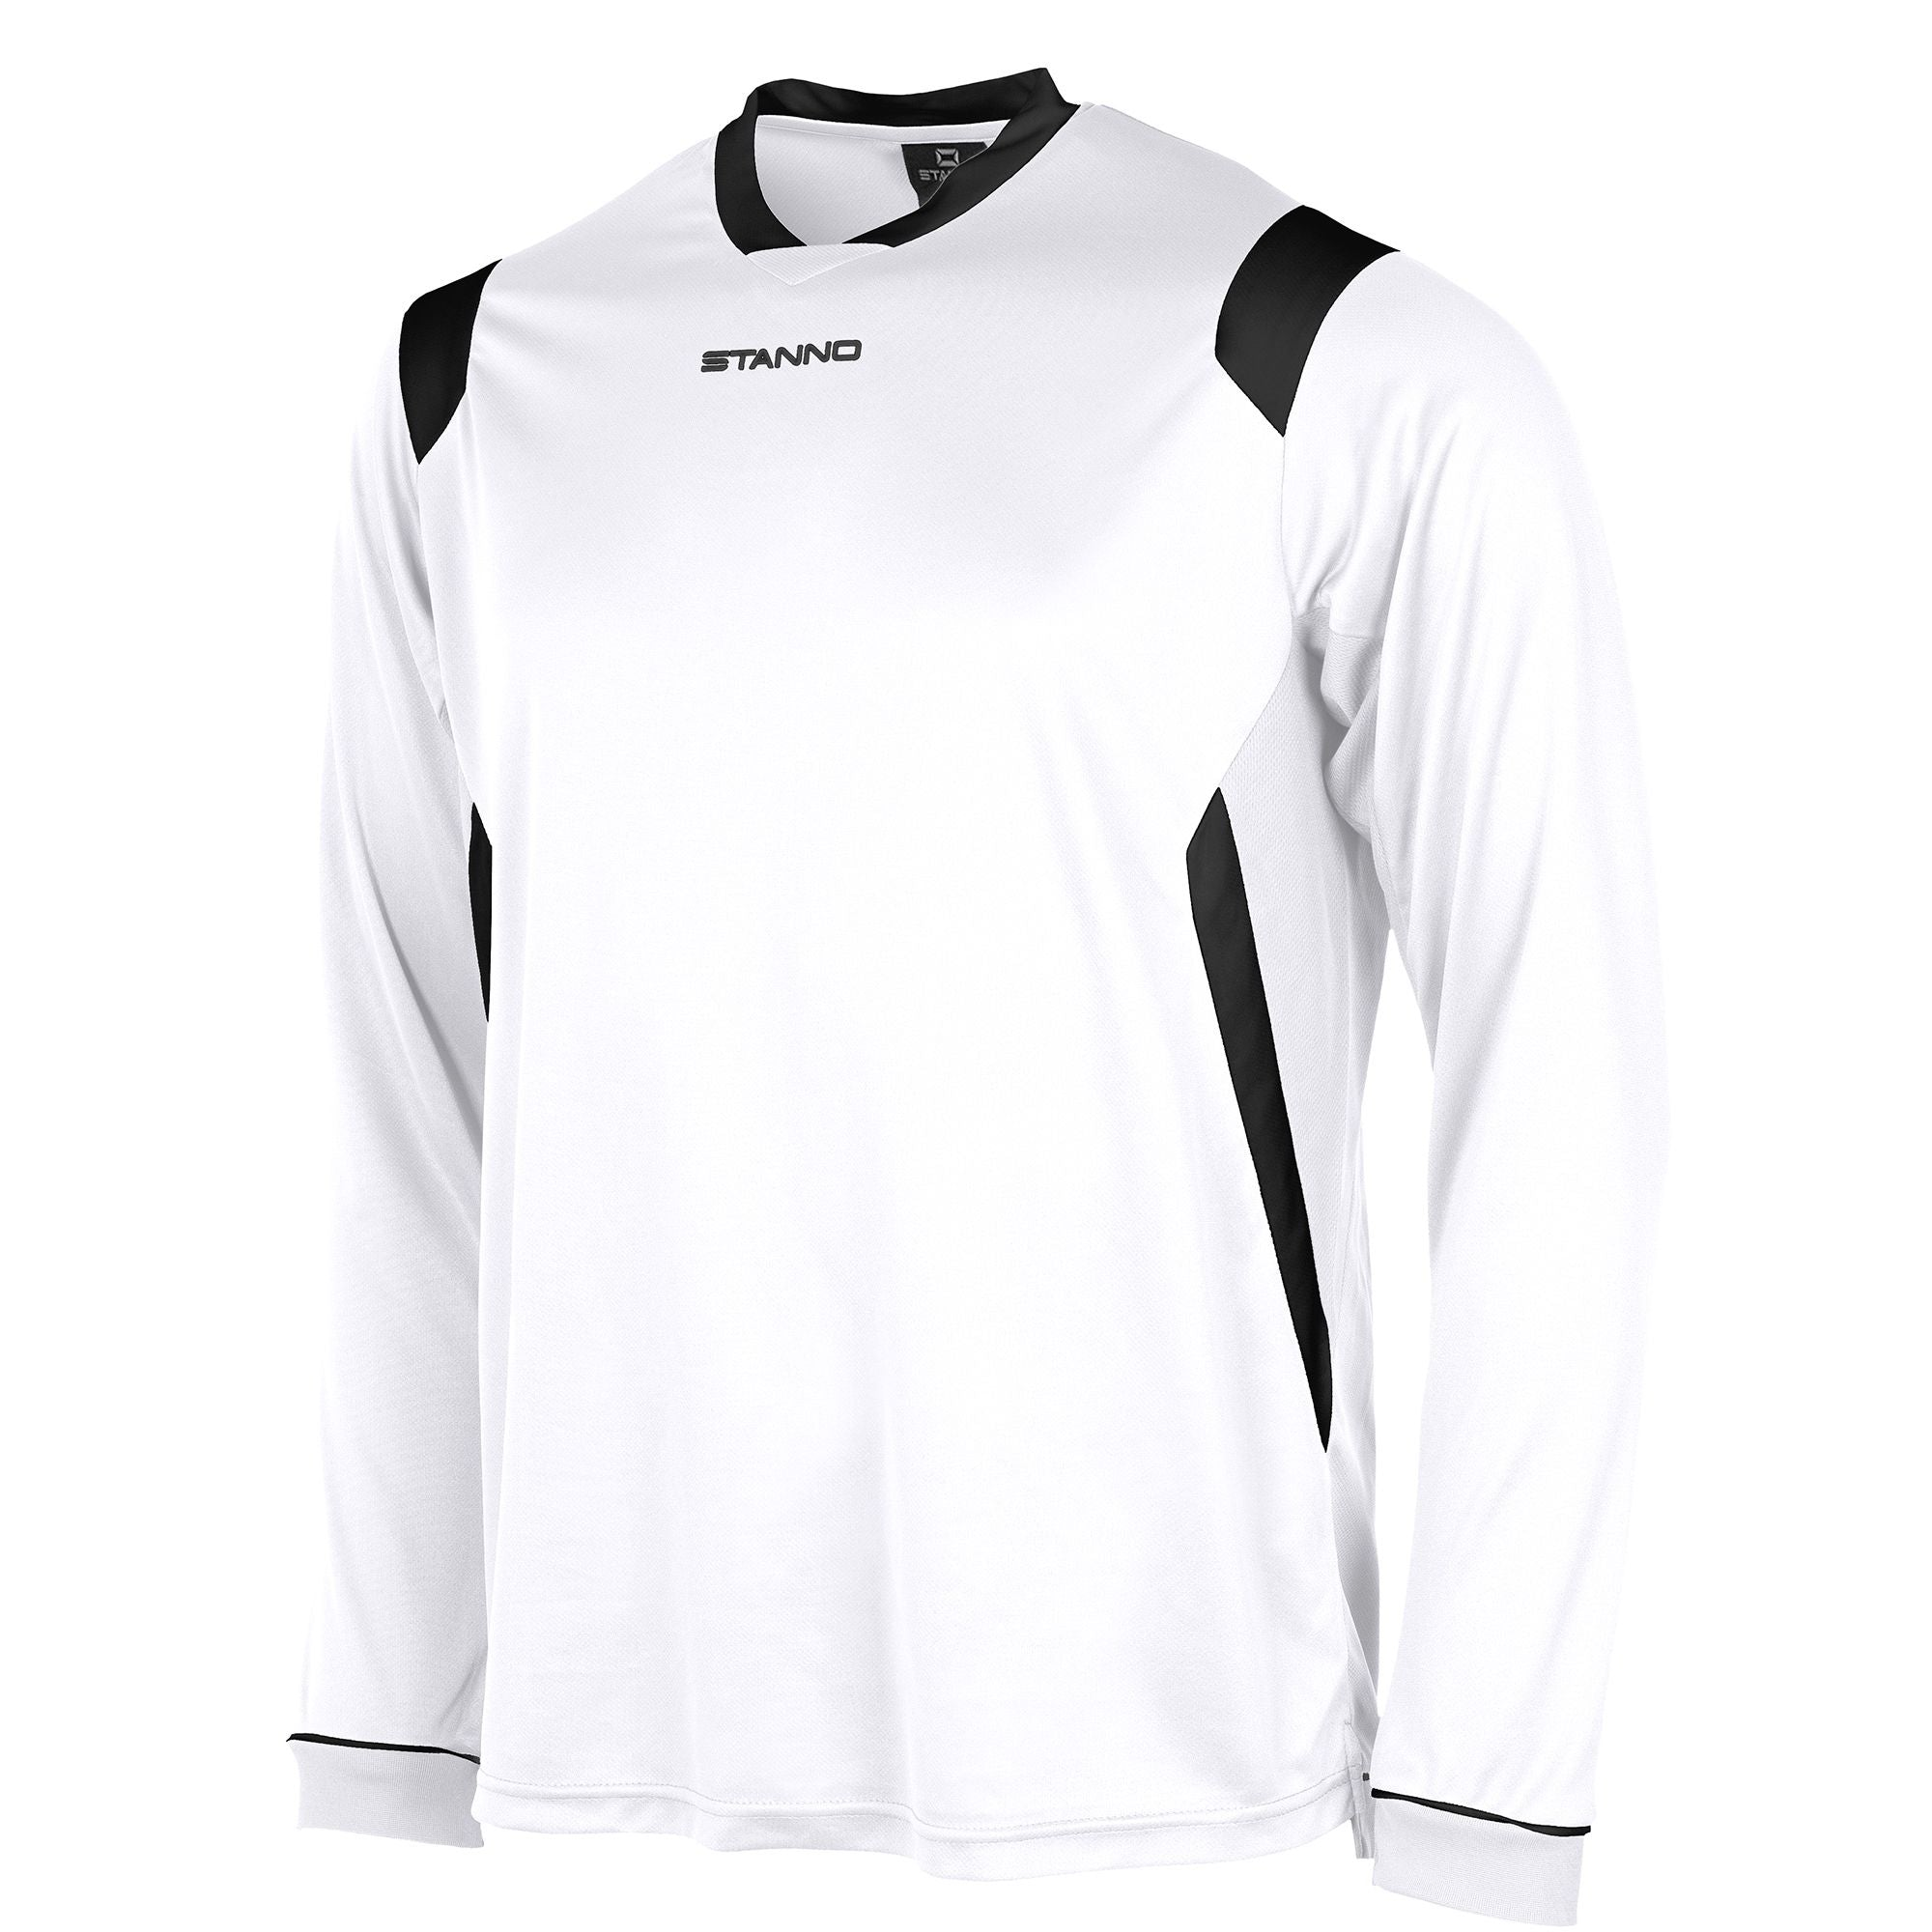 Stanno Arezzo long sleeved shirt in white with black contrast collar, and stripe detail on shoulders and sides.